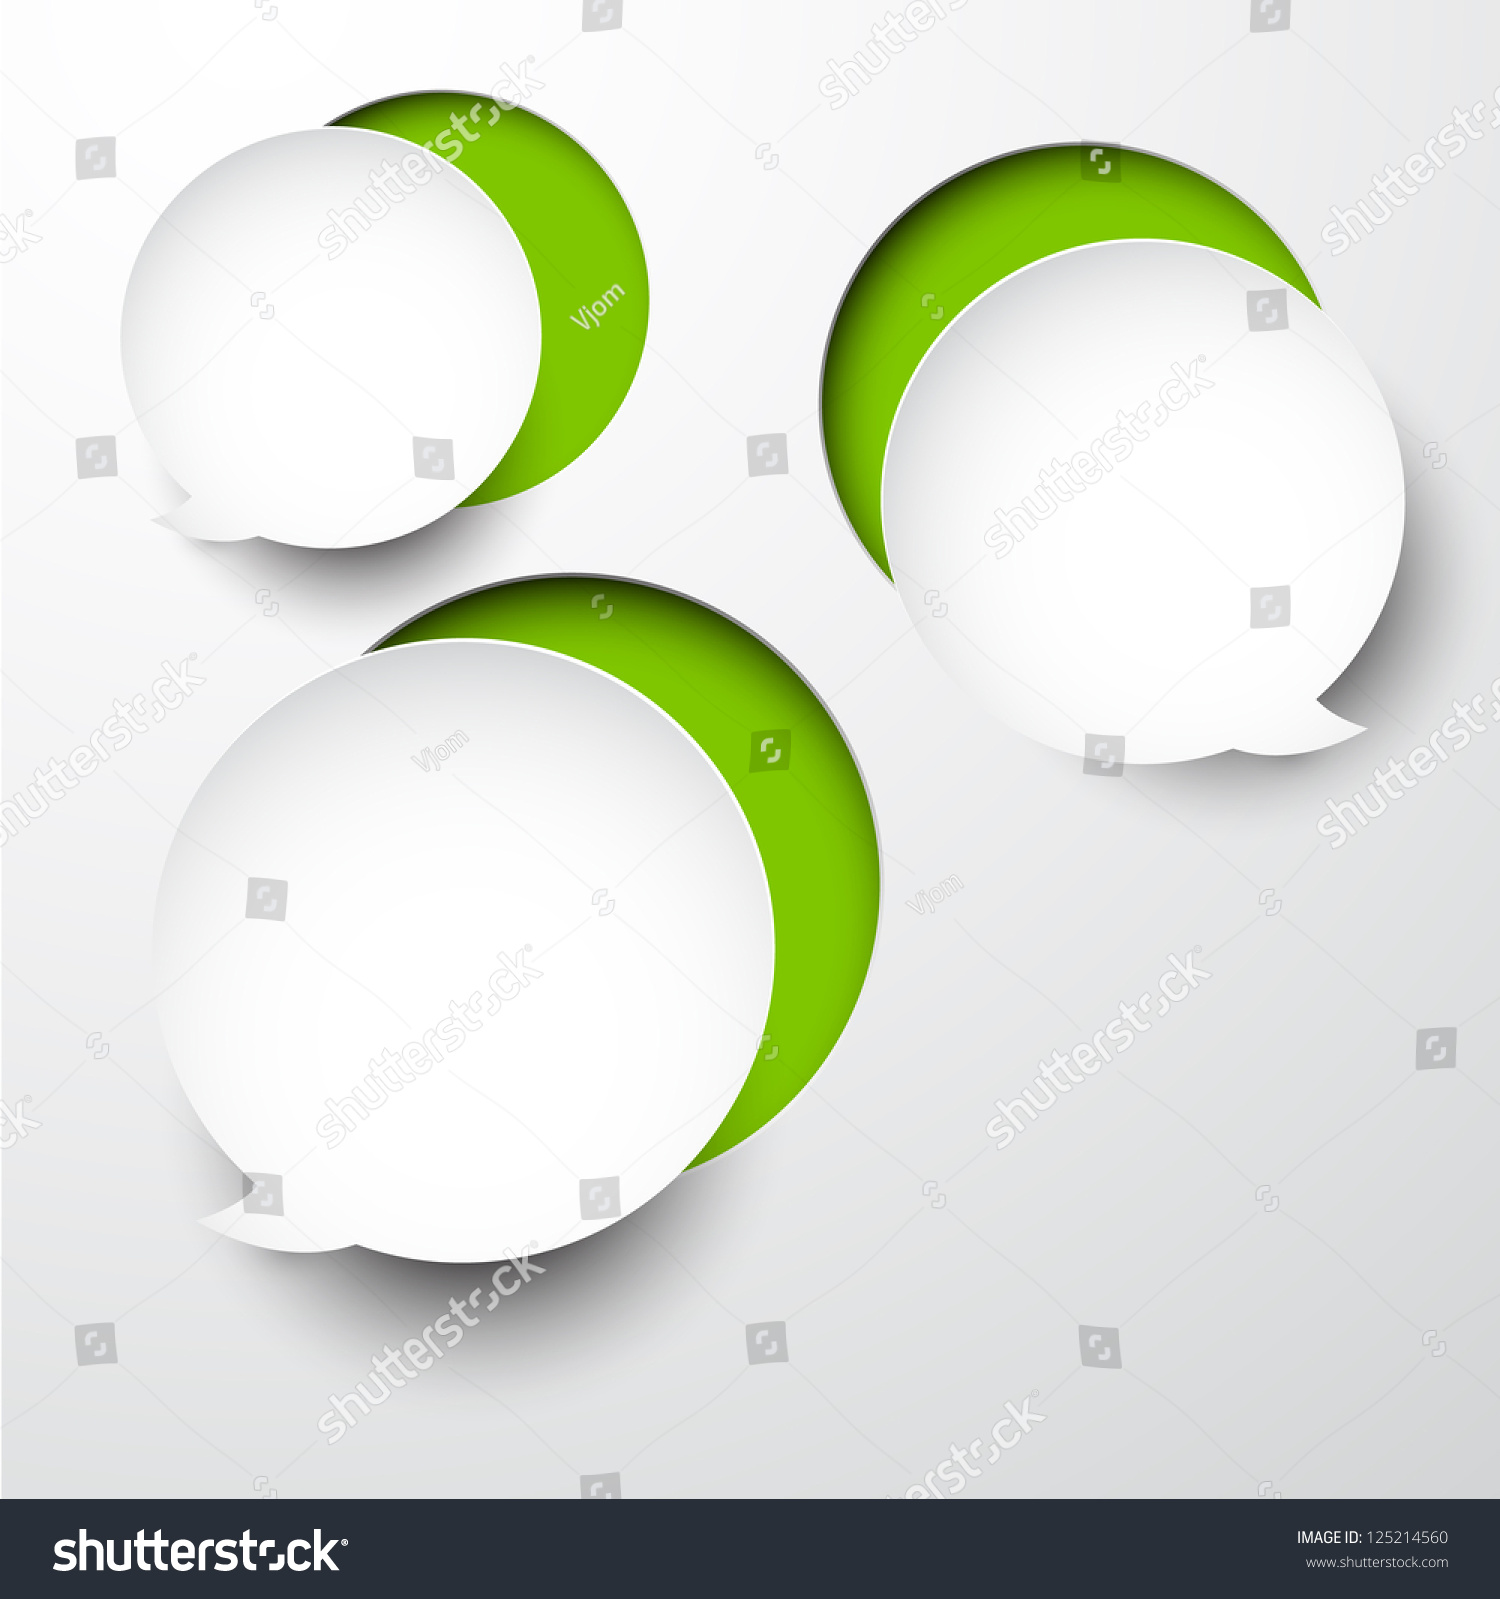 composition of a bubble essay Essay uk offers professional custom essay writing, dissertation writing and coursework writing service our work is high quality, plagiarism-free and delivered on time essay uk is a trading name of student academic services limited , a company registered in england and wales under company number 08866484.